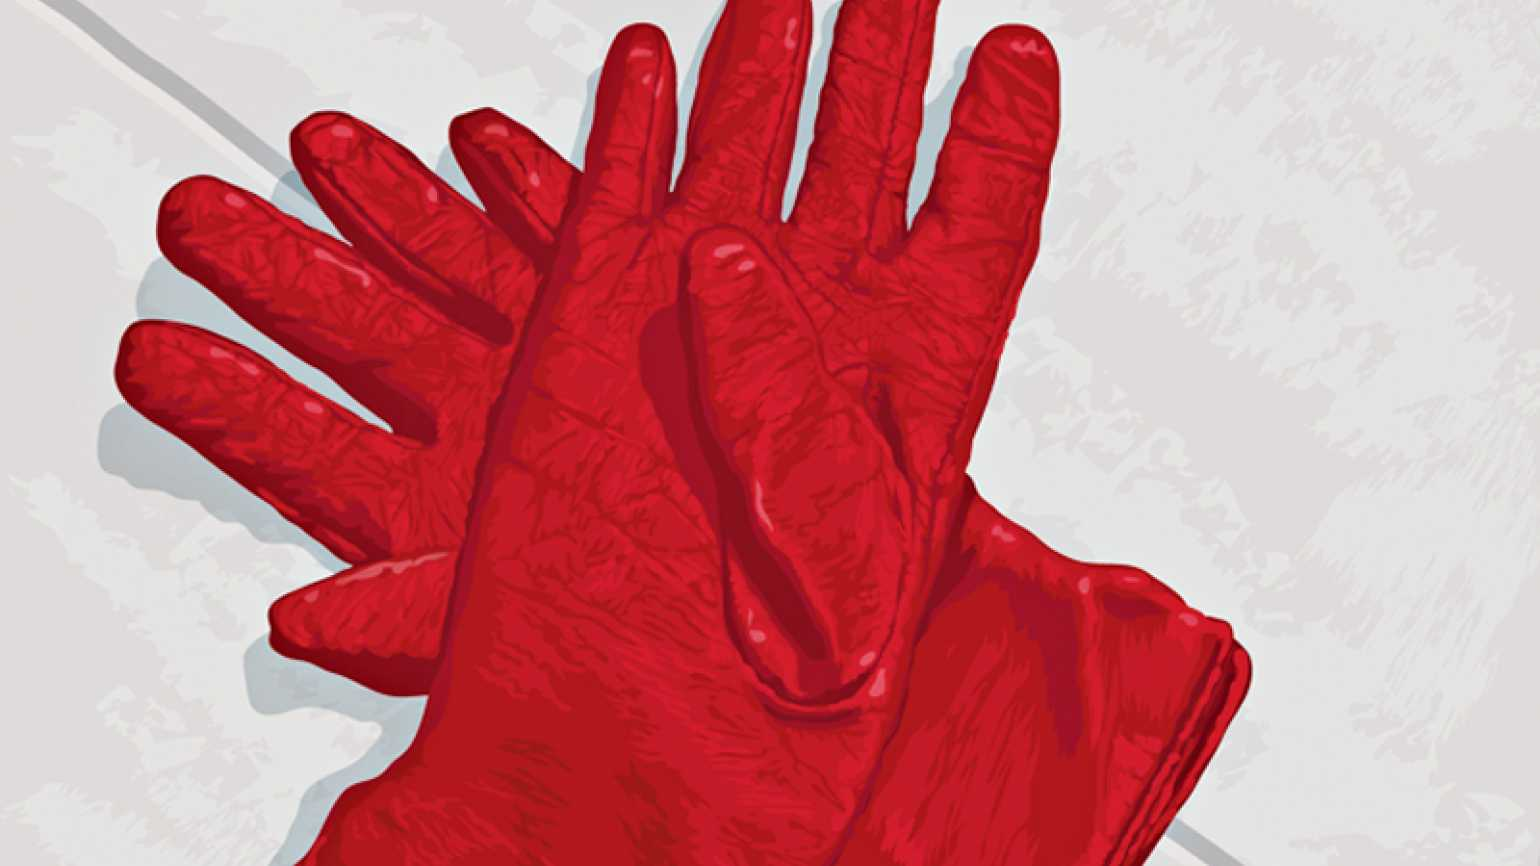 An artist's rendering of a pair of red leather gloves